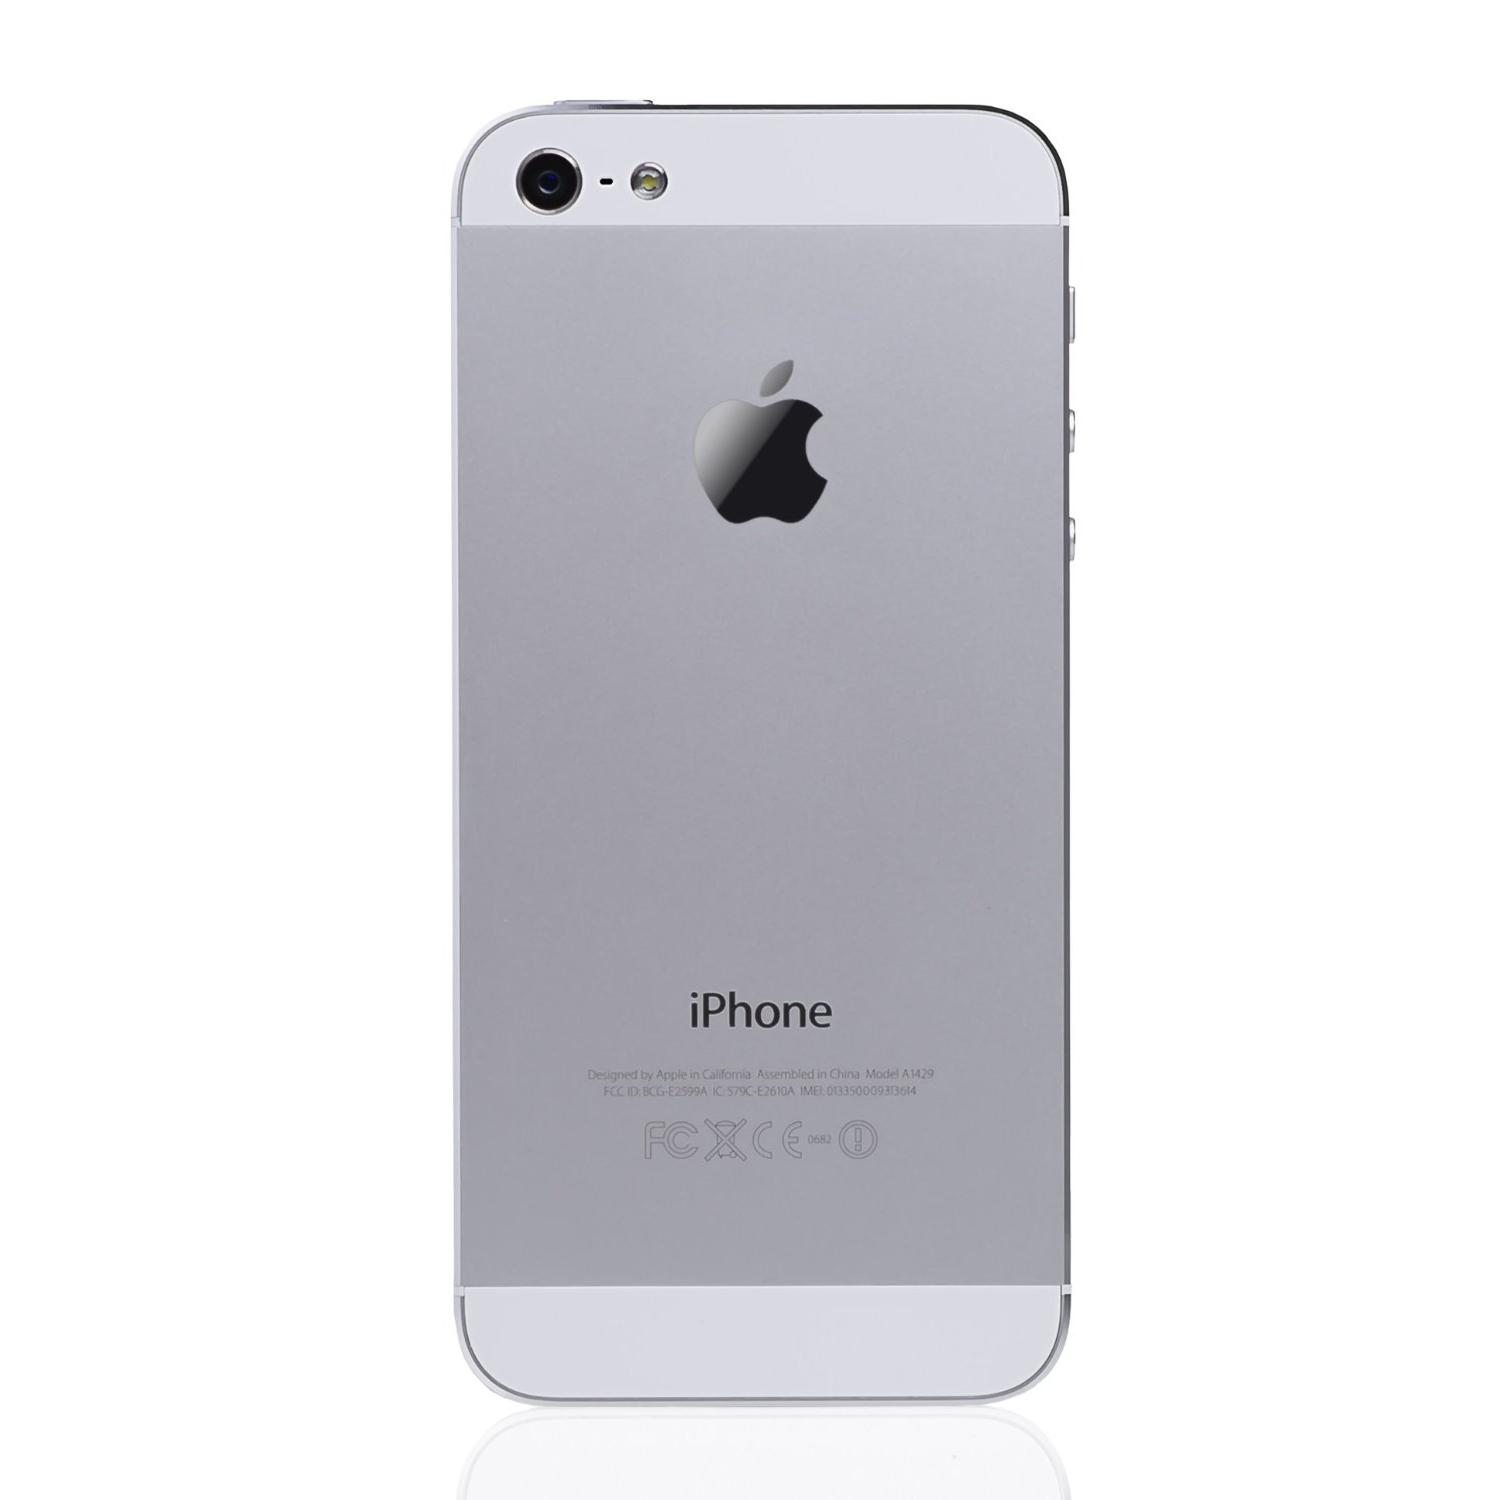 iPhone 5 32 GB - Blanco - Orange